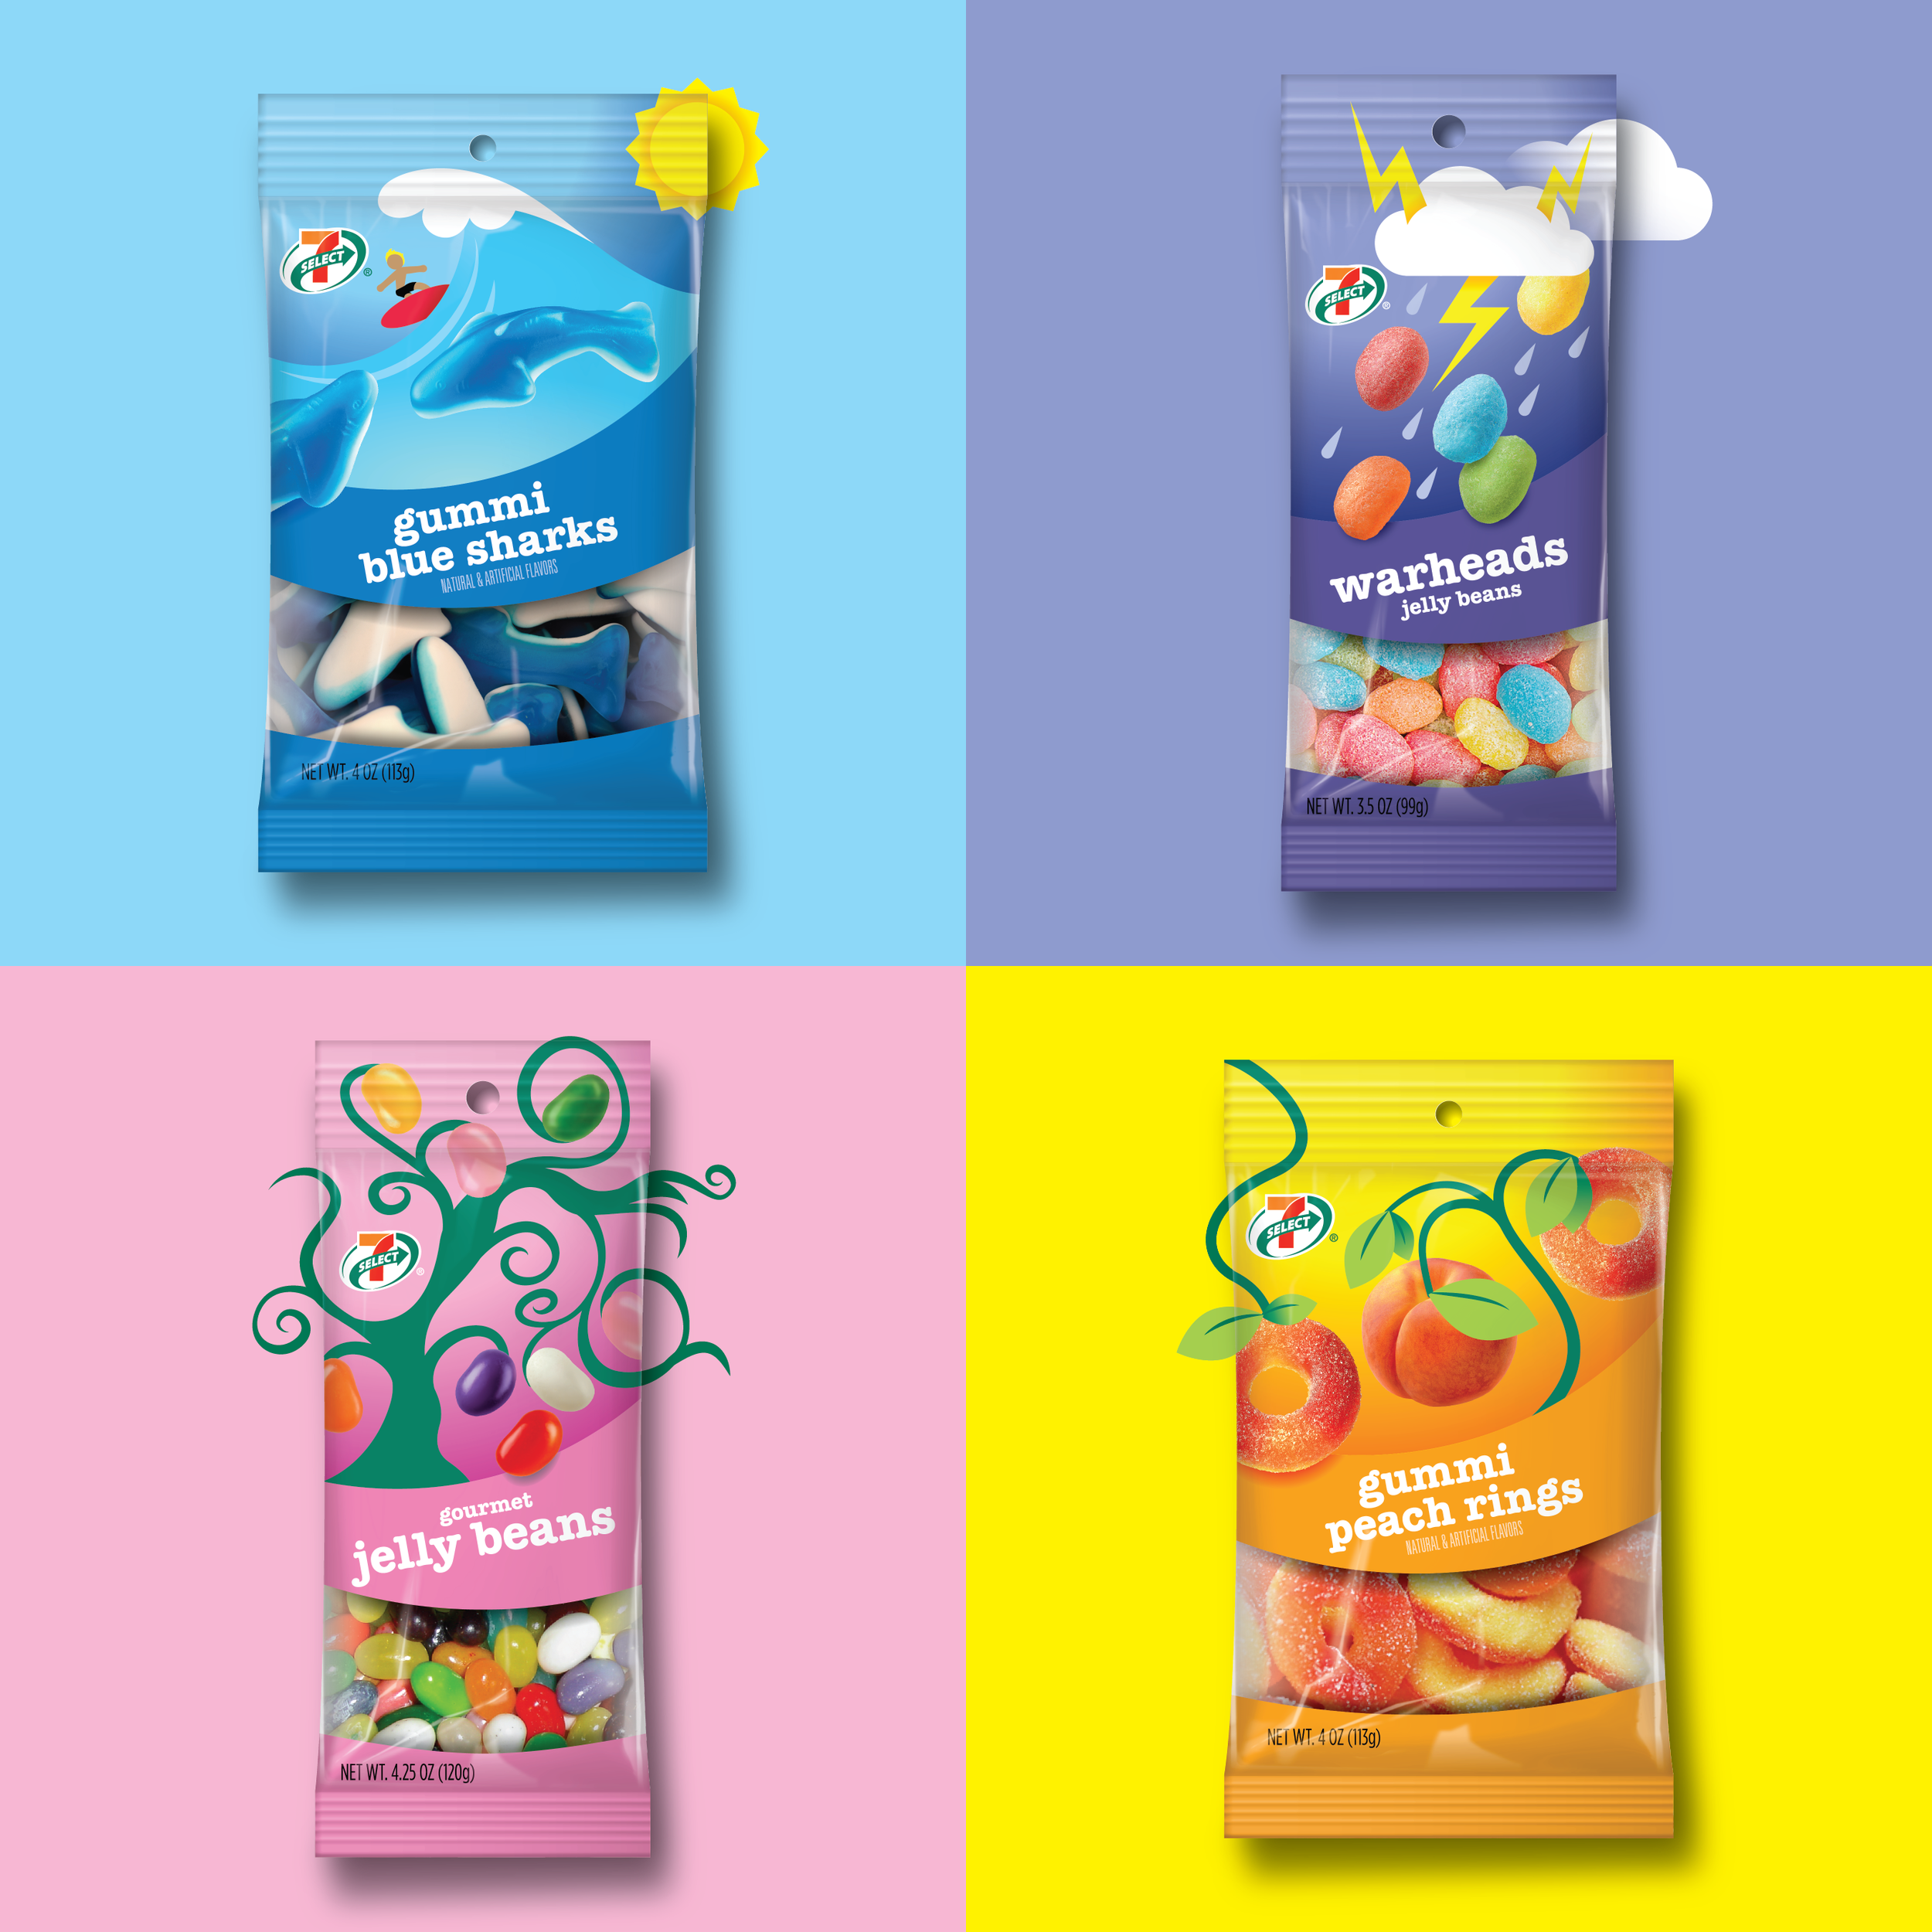 7Eleven_candy-01.png